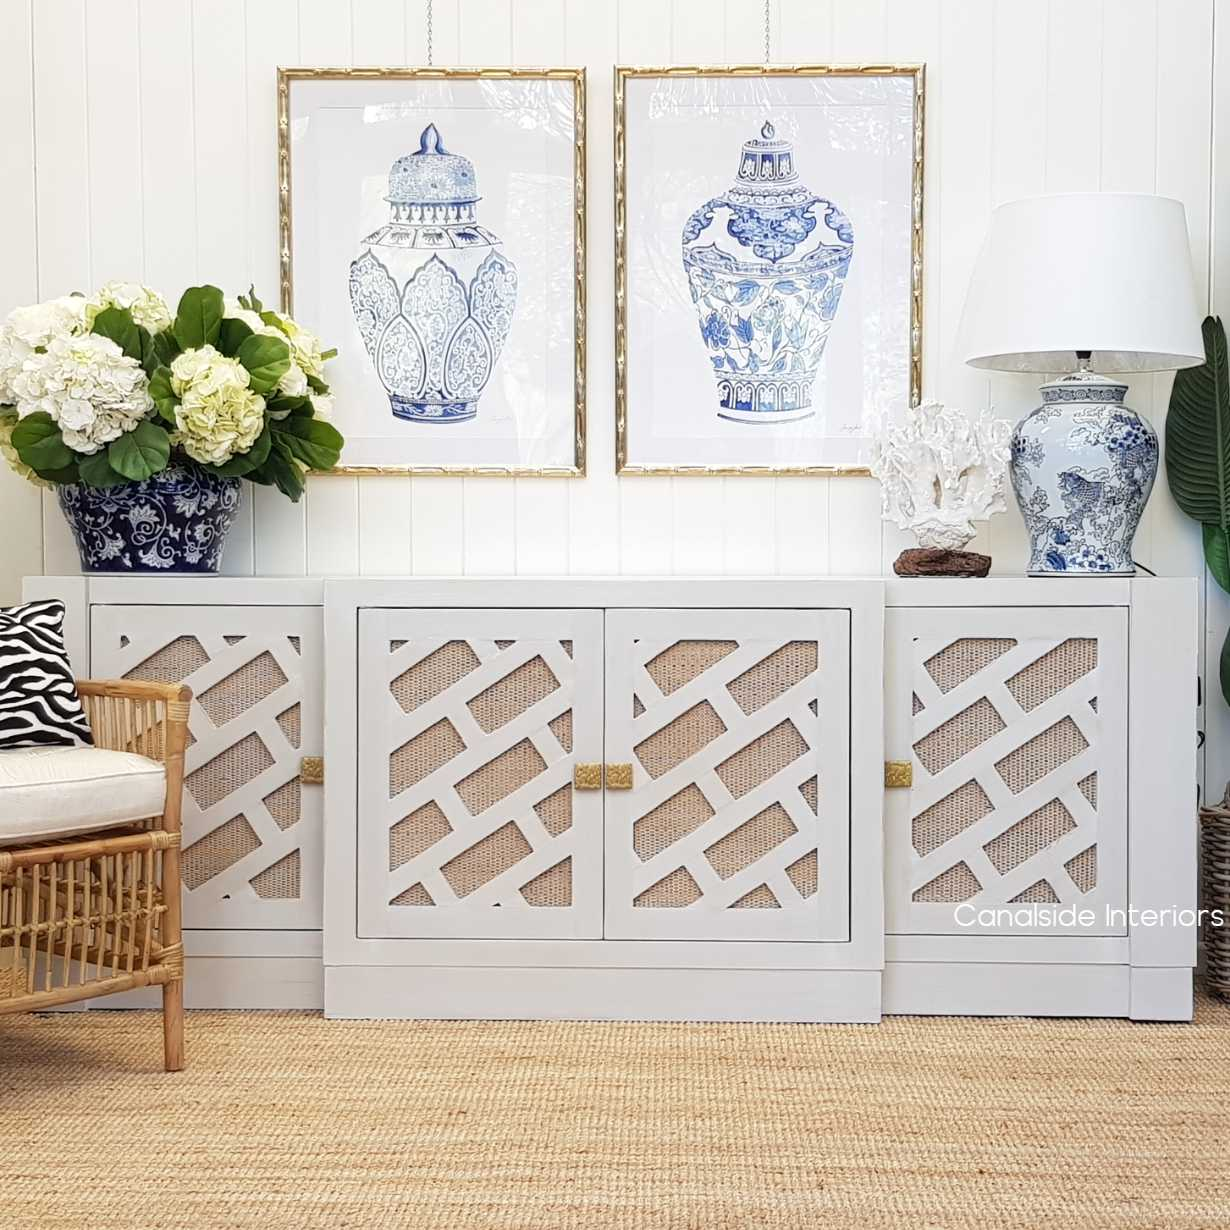 Brielle Botanica Sideboard  HAMPTONS Style, PLANTATION Style, LIVING Room, LIVING TV Media & Storage, TABLES Sideboards & Buffets, STORAGE, Sideboards & Buffets, Rattan, island style, chinoiserie, british colonial, coastal